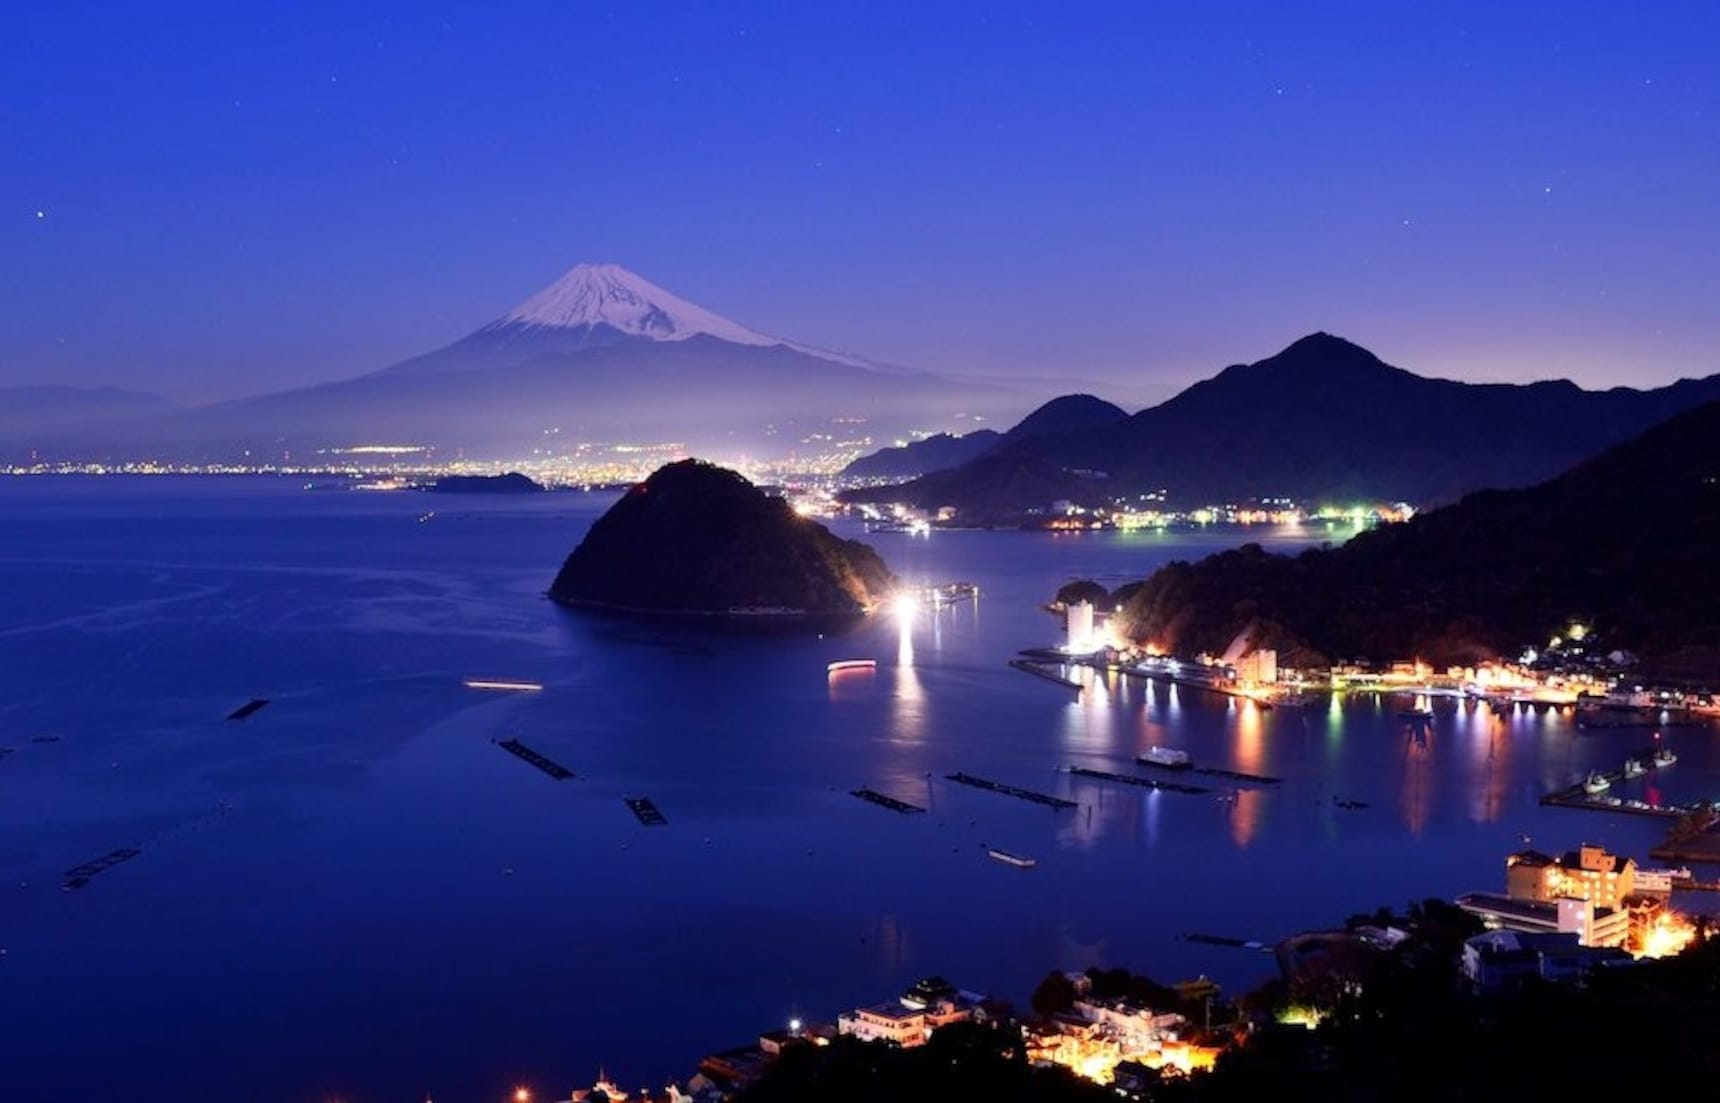 The 21 Best Places to See Mount Fuji